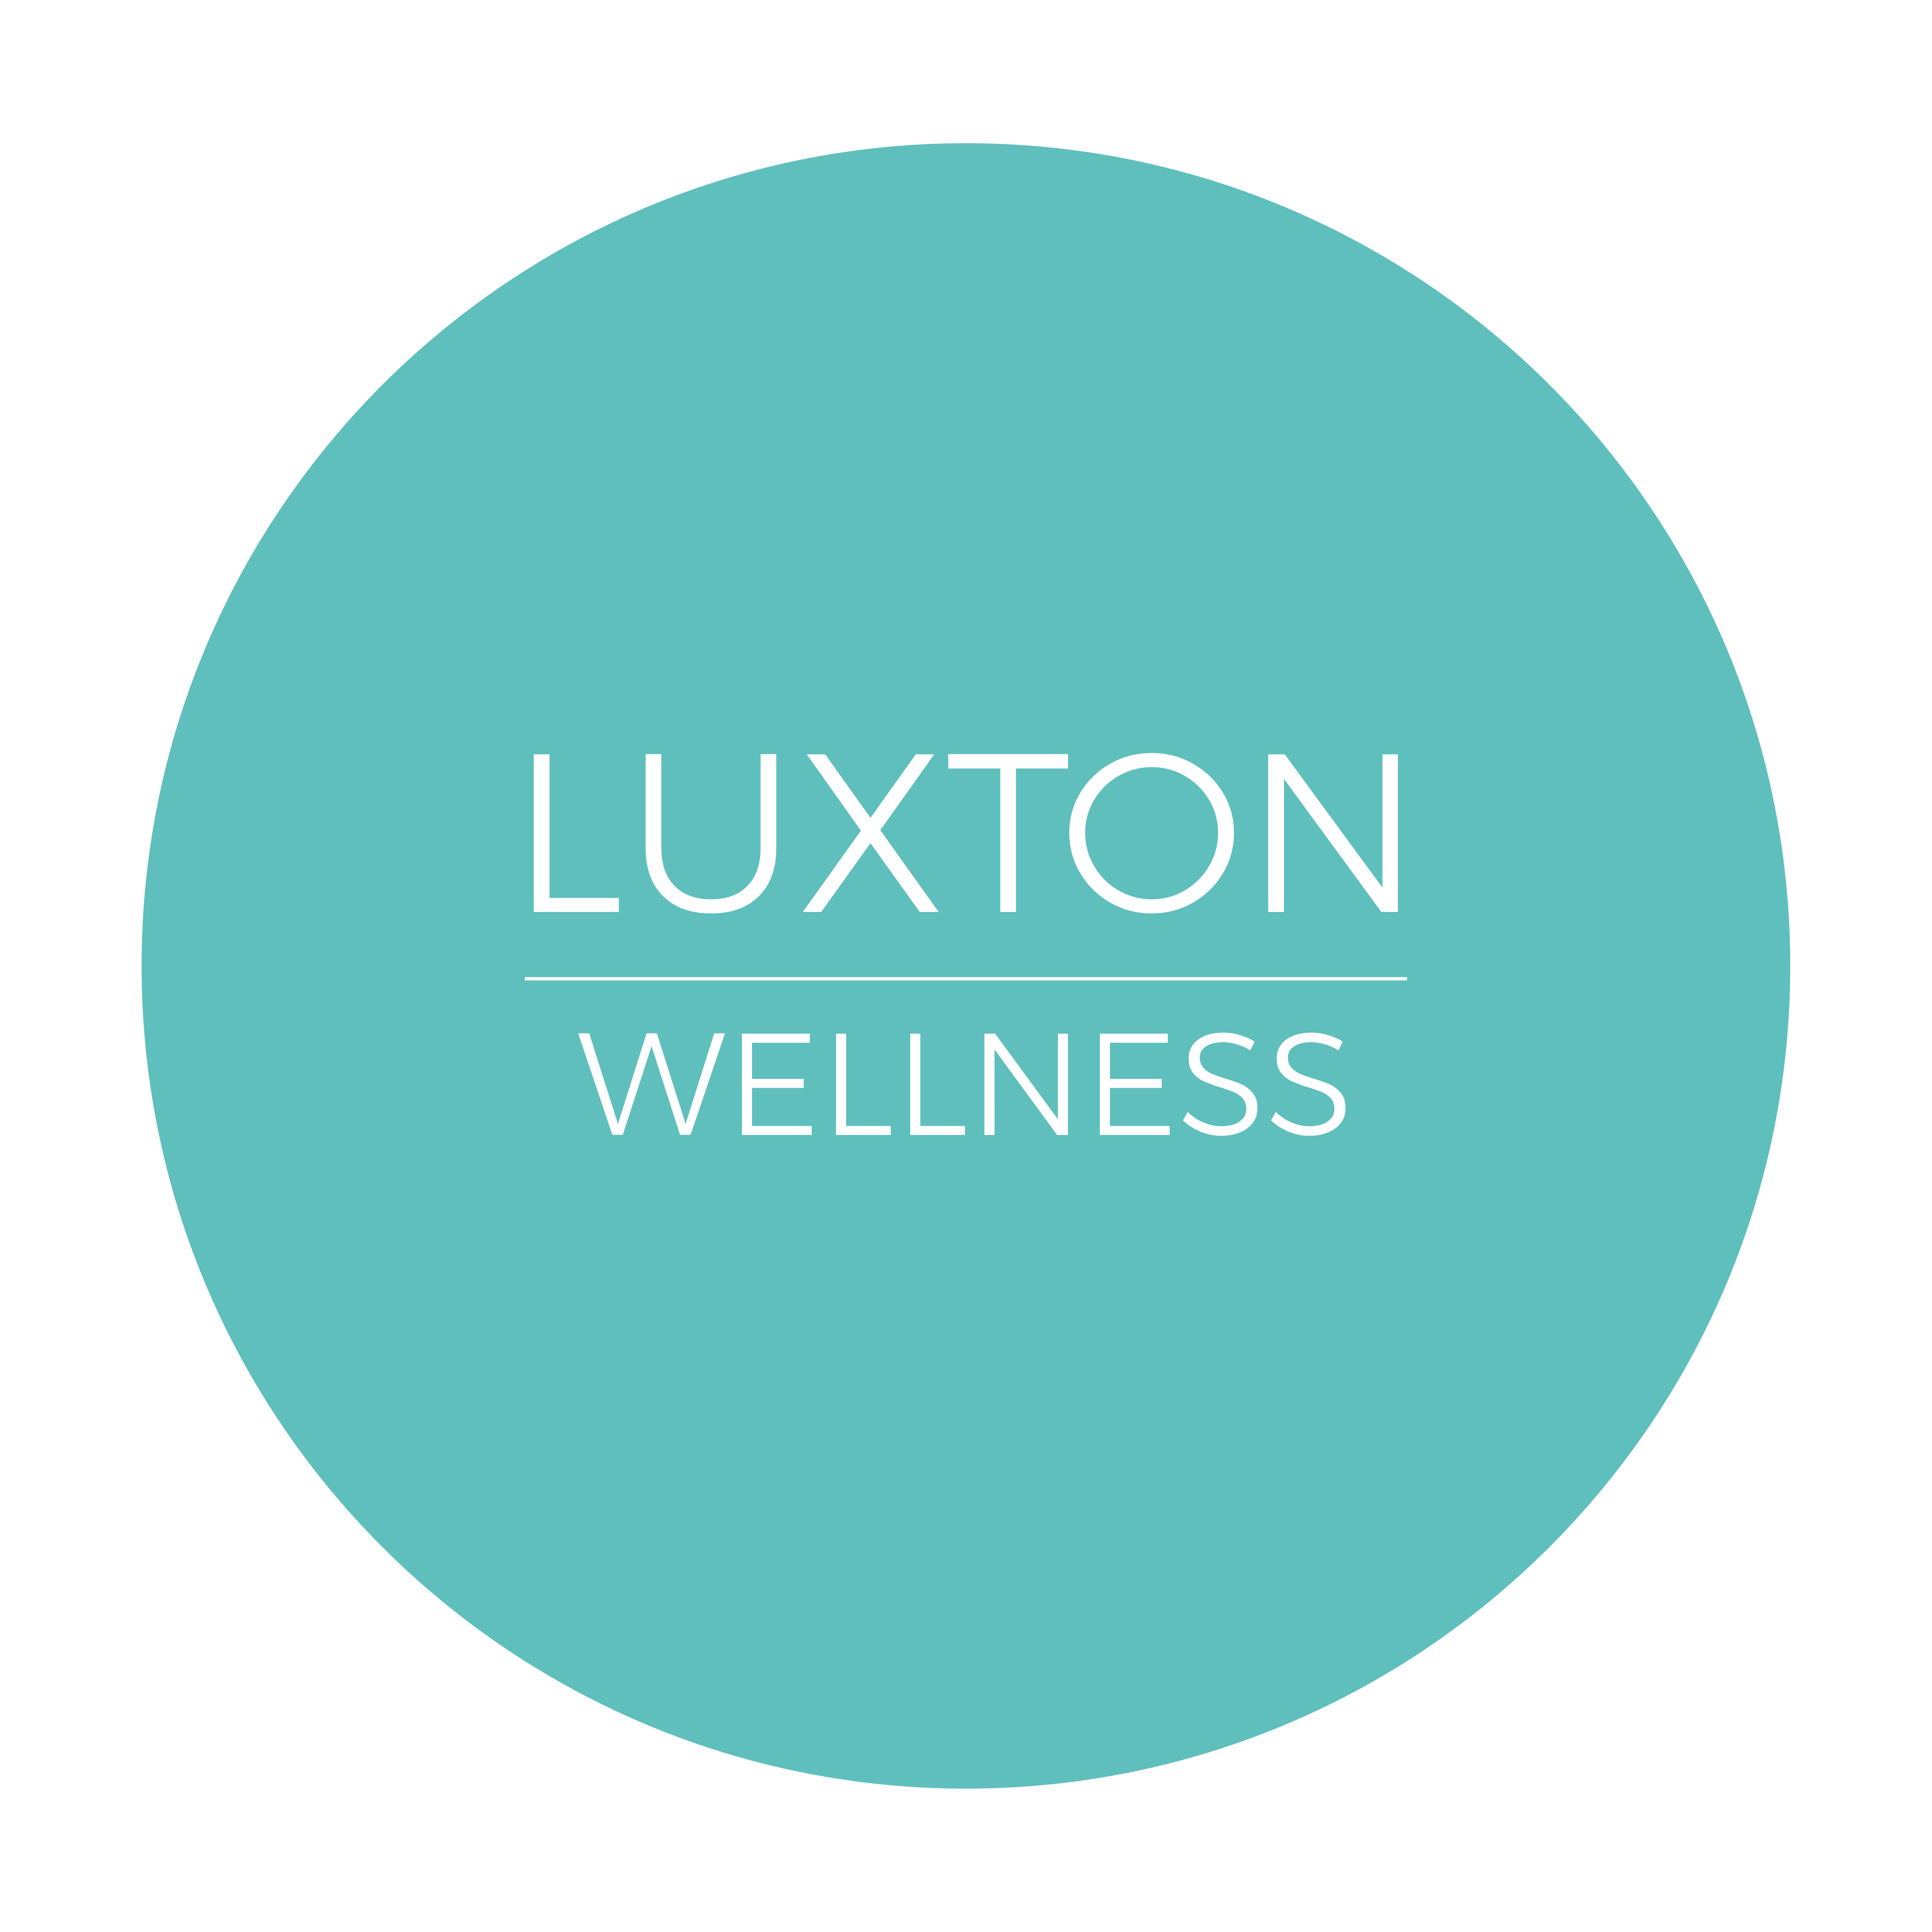 LUXTON_LOGO_2020_FINAL_PNG_HIGH RES_TRANSPARENT